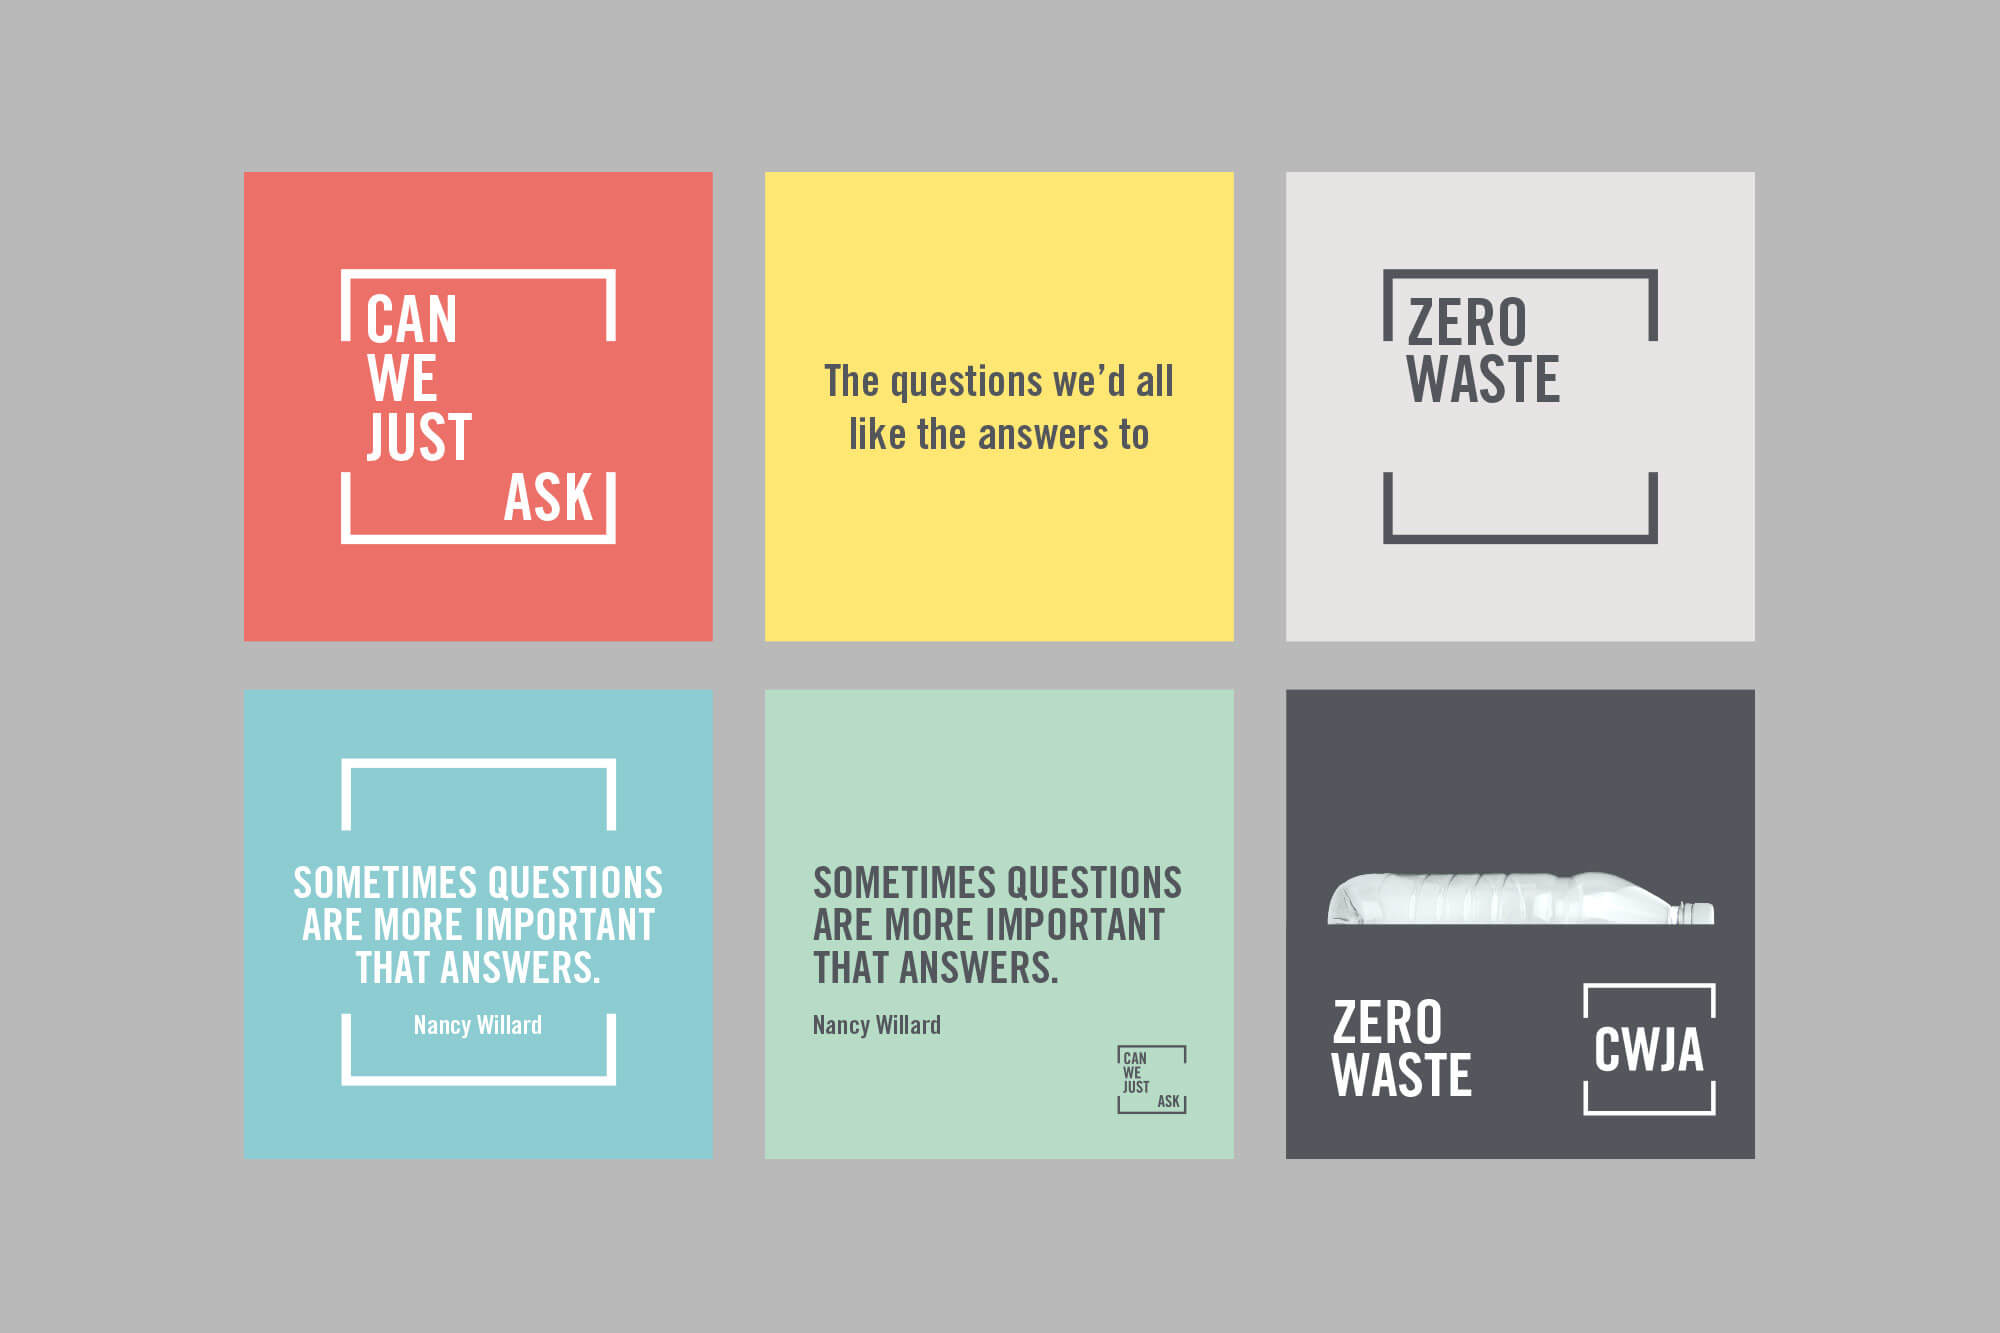 gpj-design-can-we-just-ask-brand-identity-cs-05